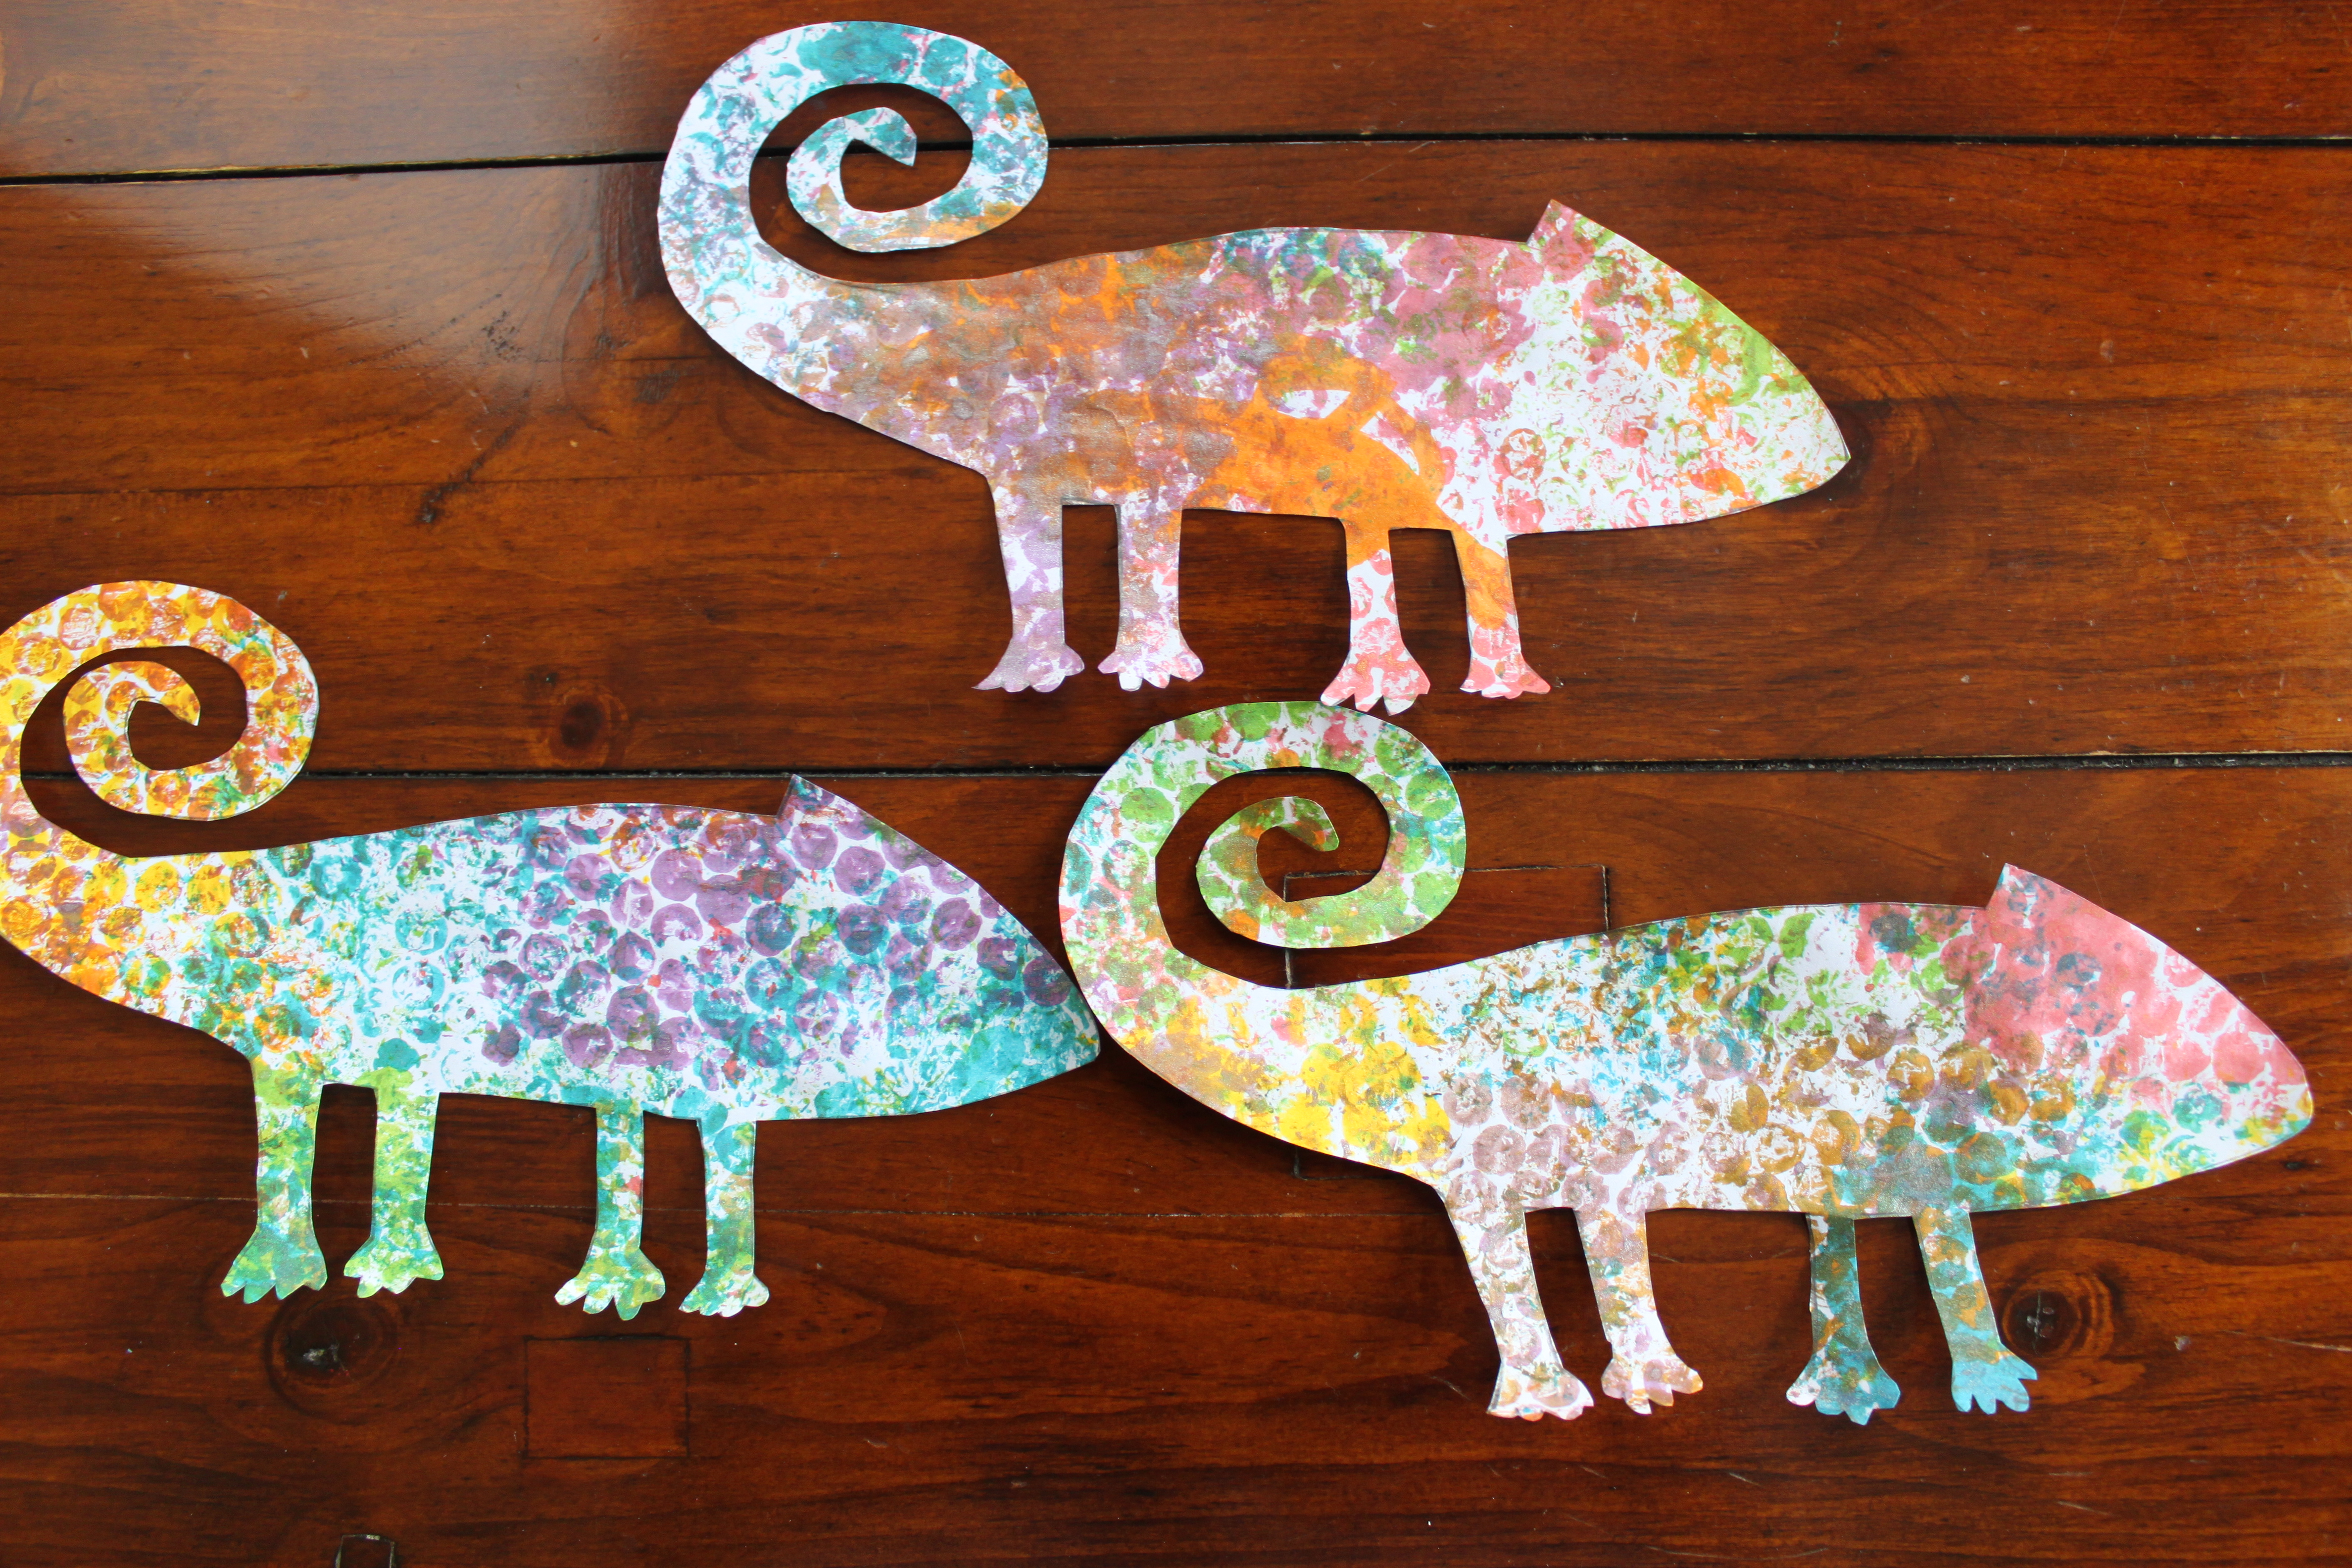 Fddd A F D Acde D F B Preschool Printables Preschool Classroom in addition D Ae Af A Aa Ec C E A Cae Ff Chameleon Template Free Printable Eric Carle further Img as well Lcdjjjzgi as well Preschool Art Based On The Book The Mixed Up Chameleon By Eric Carle. on preschool chameleon art